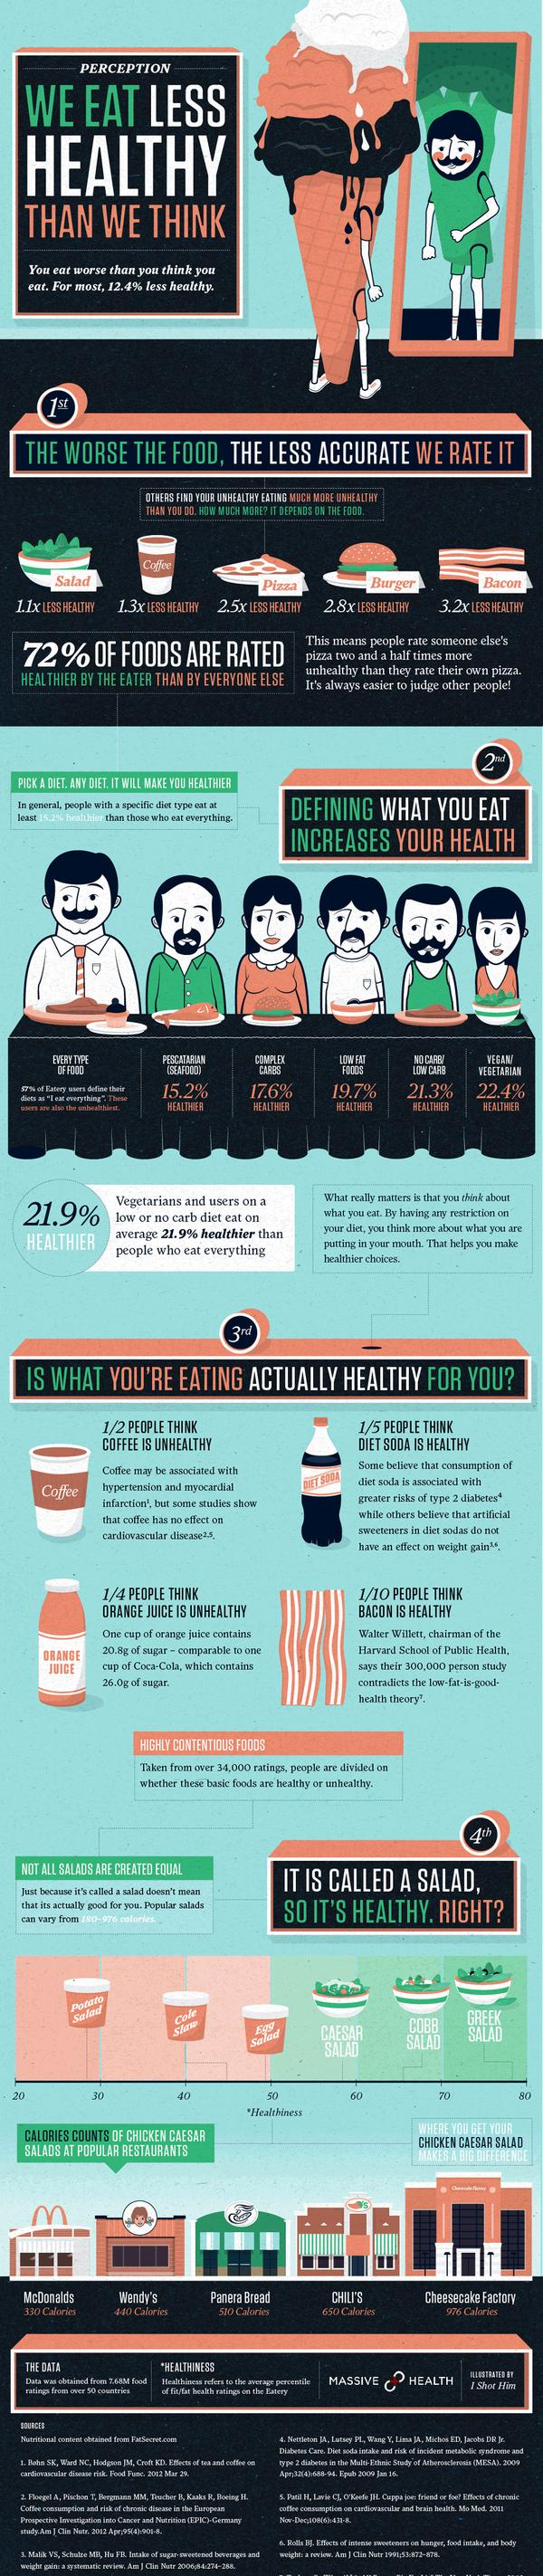 we eat less healthy than we think infographic